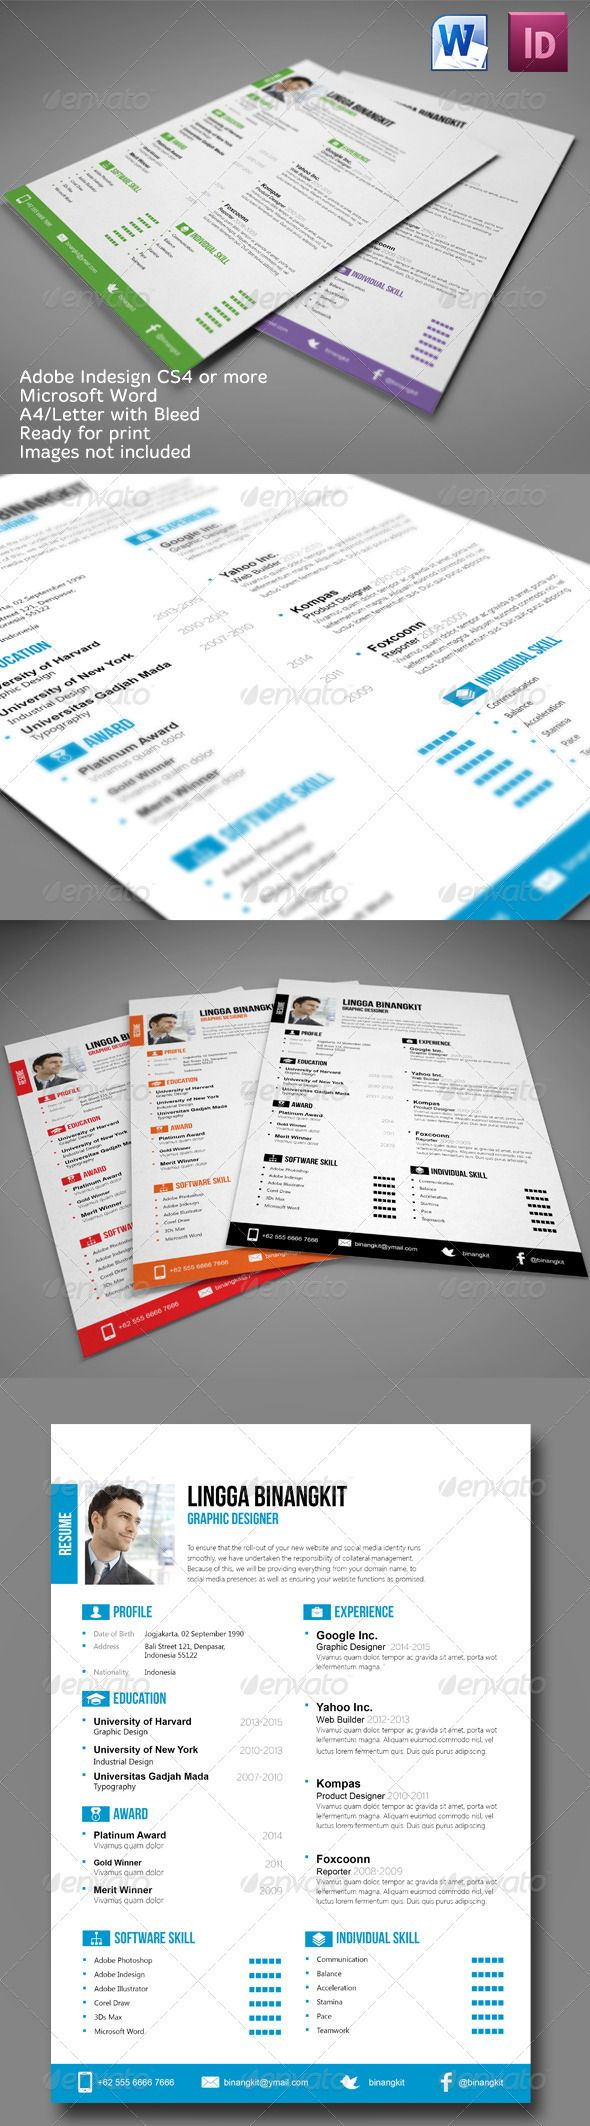 Pretty 1 Year Experience Resume In Java J2ee Thick 10 Best Resume Samples Flat 10 Tips For Writing A Good Resume 10 Window Envelope Template Youthful 100 Dollar Bill Template Red2 Page Resume Layout 135 Best Images About Graphic Design On Pinterest | Logos ..